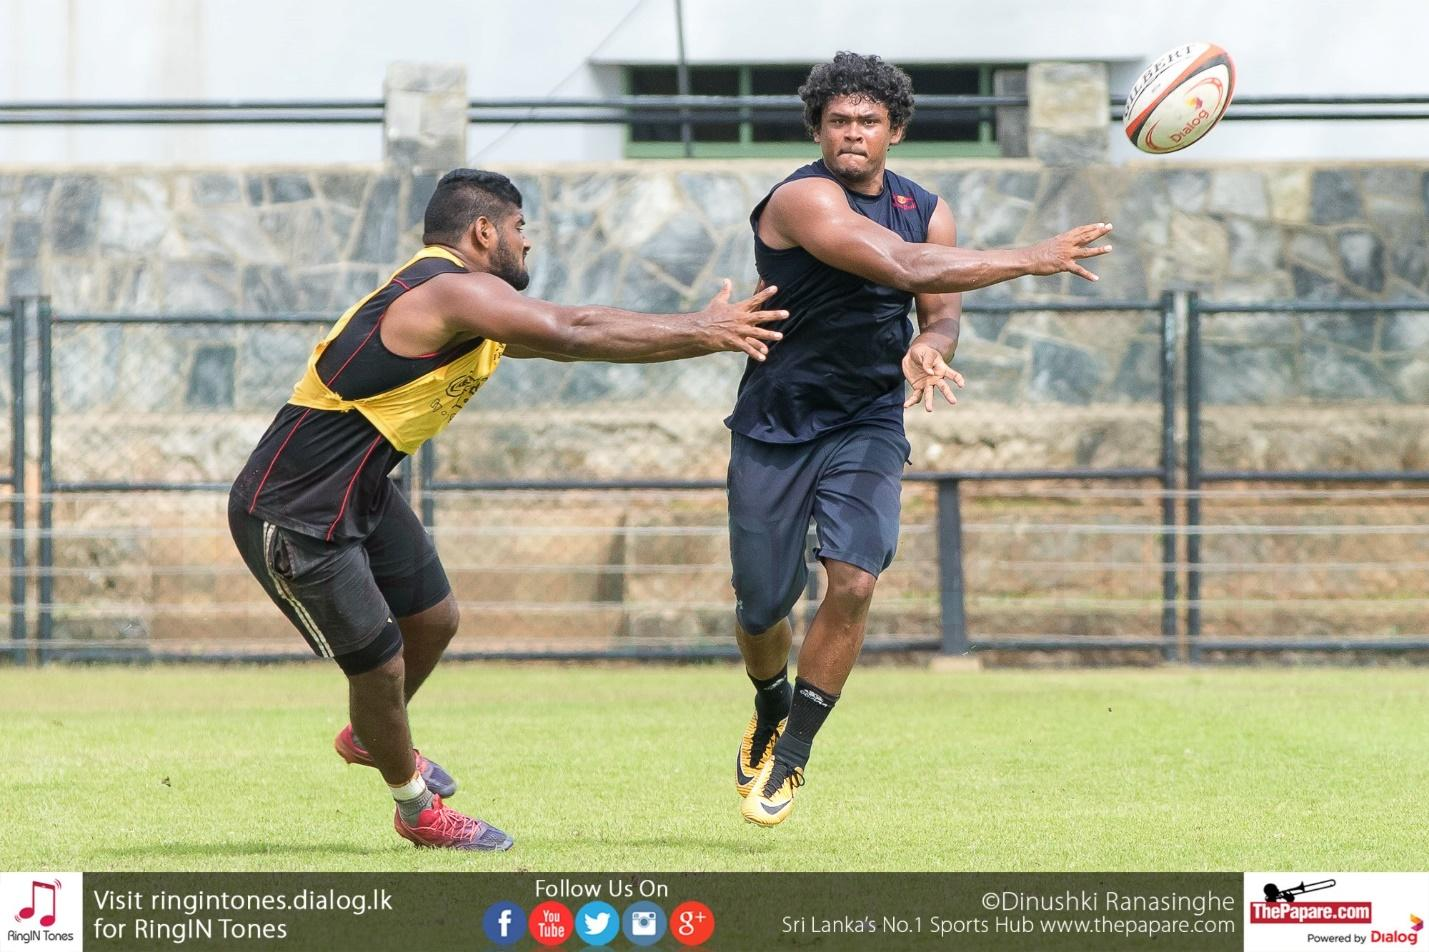 Muthuthanthri (R) training at Racecourse ahead of the 1st leg. Pictured left is Omalka Gunarathane